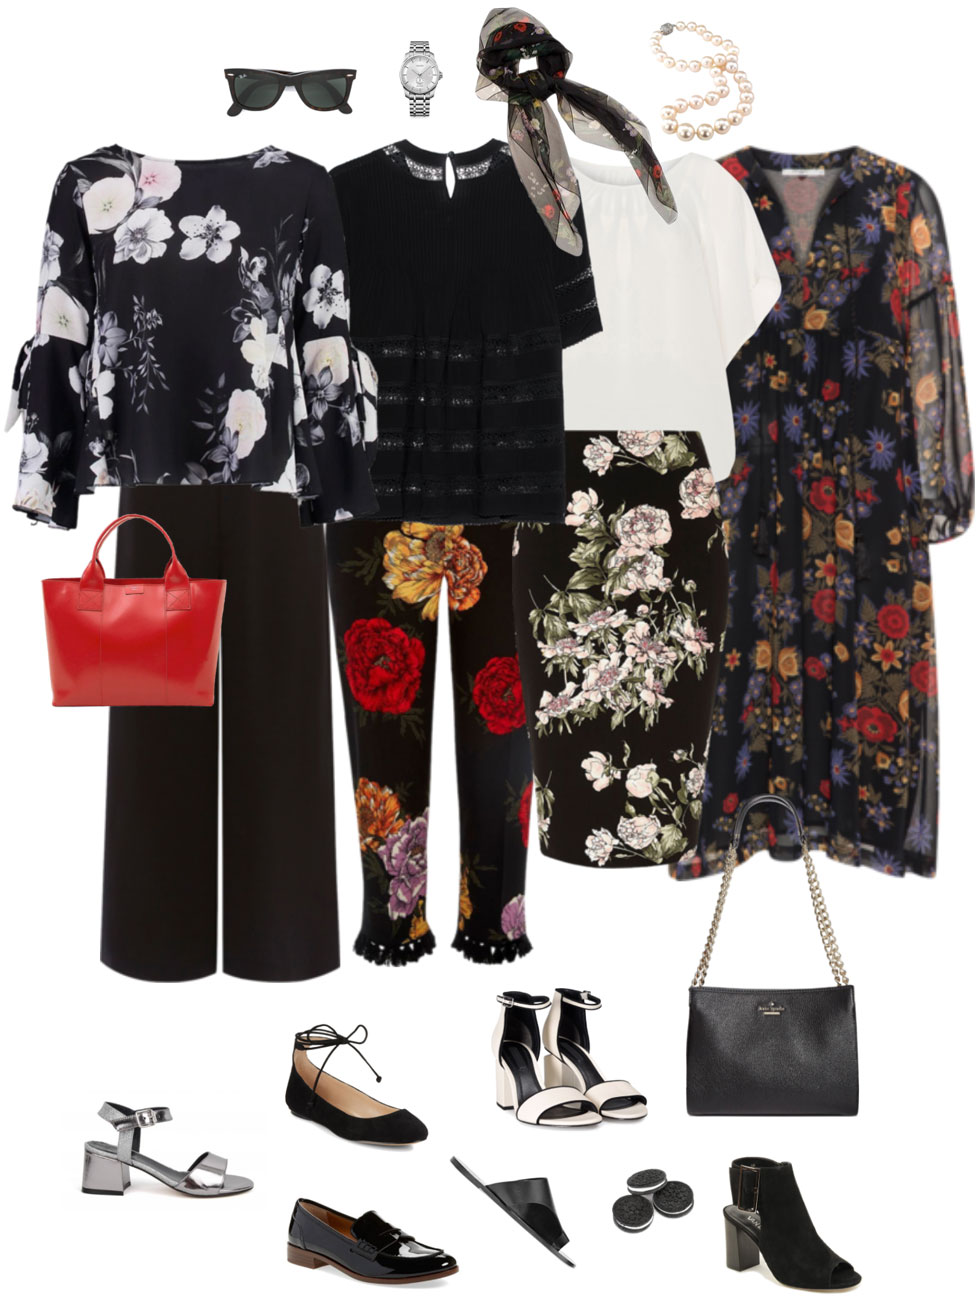 Ensemble: Dark Summer Floral